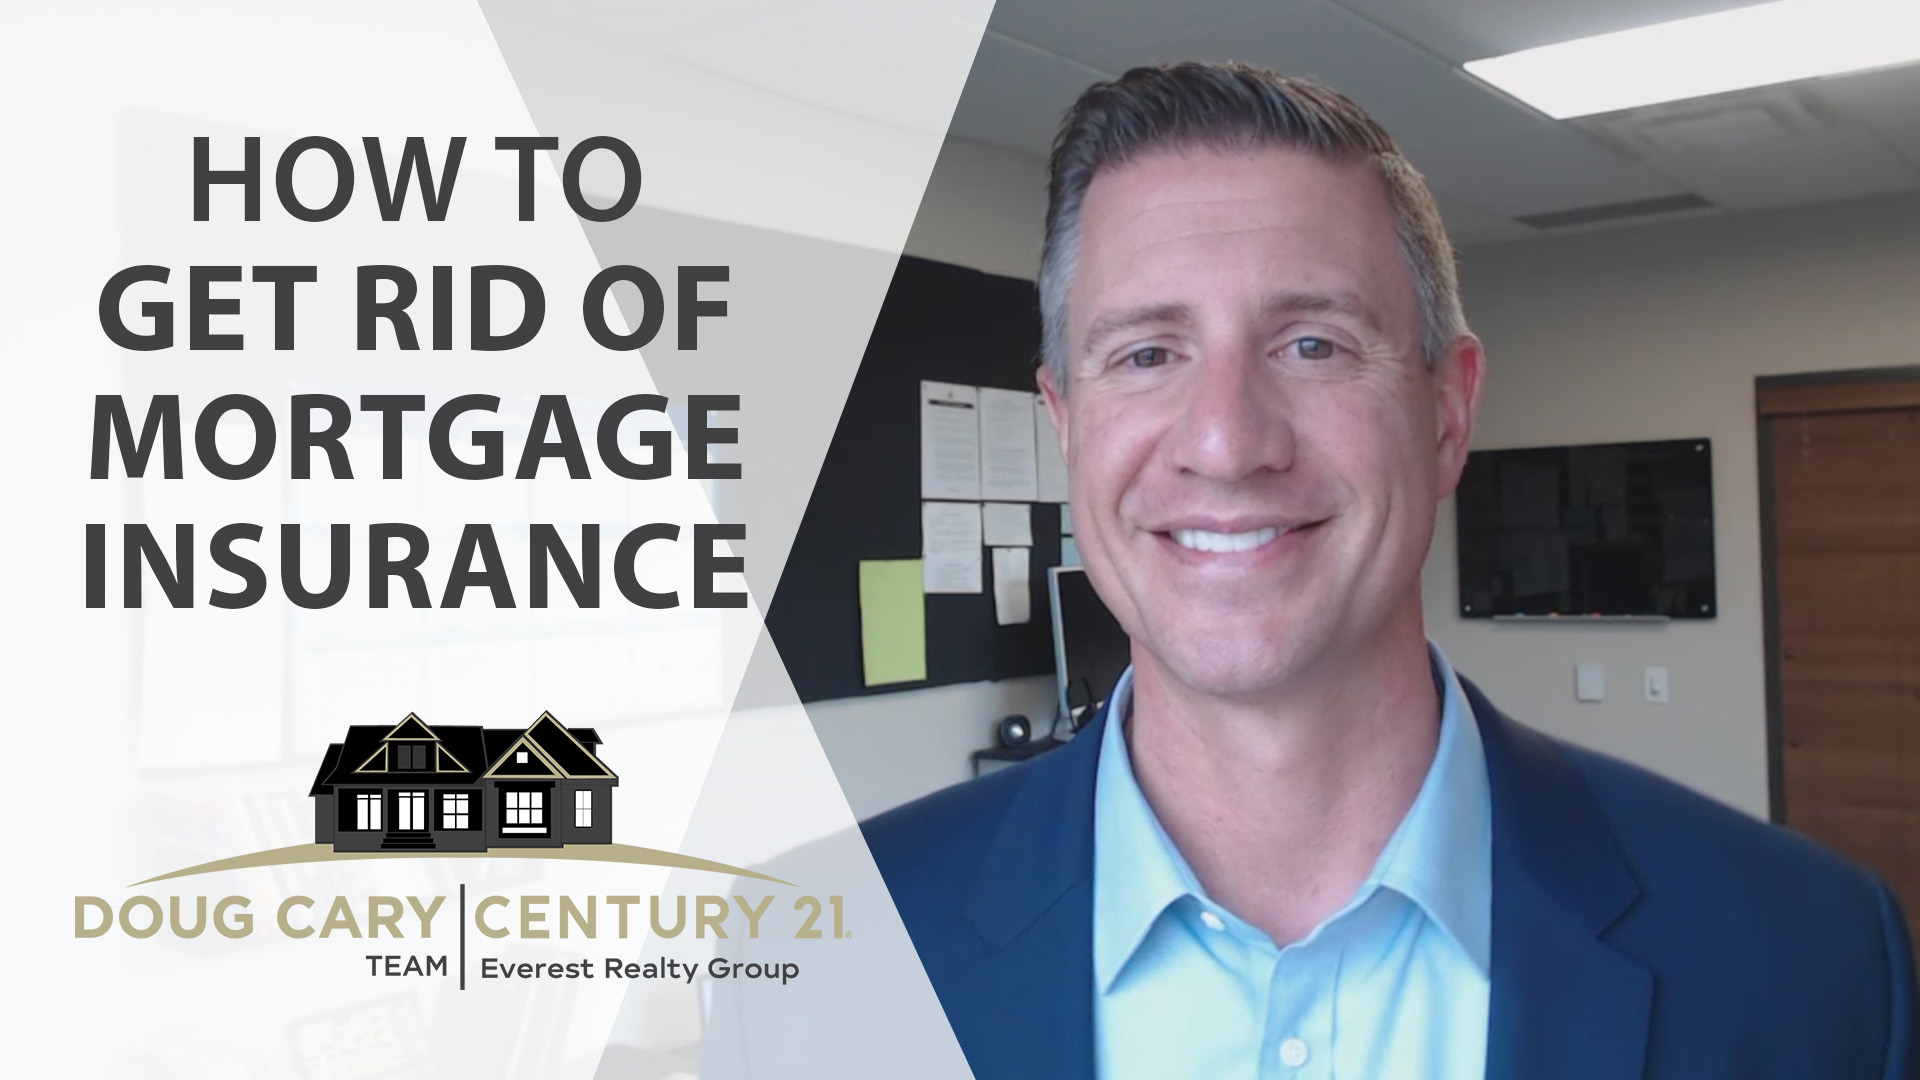 How to Get Rid of Your Mortgage Insurance